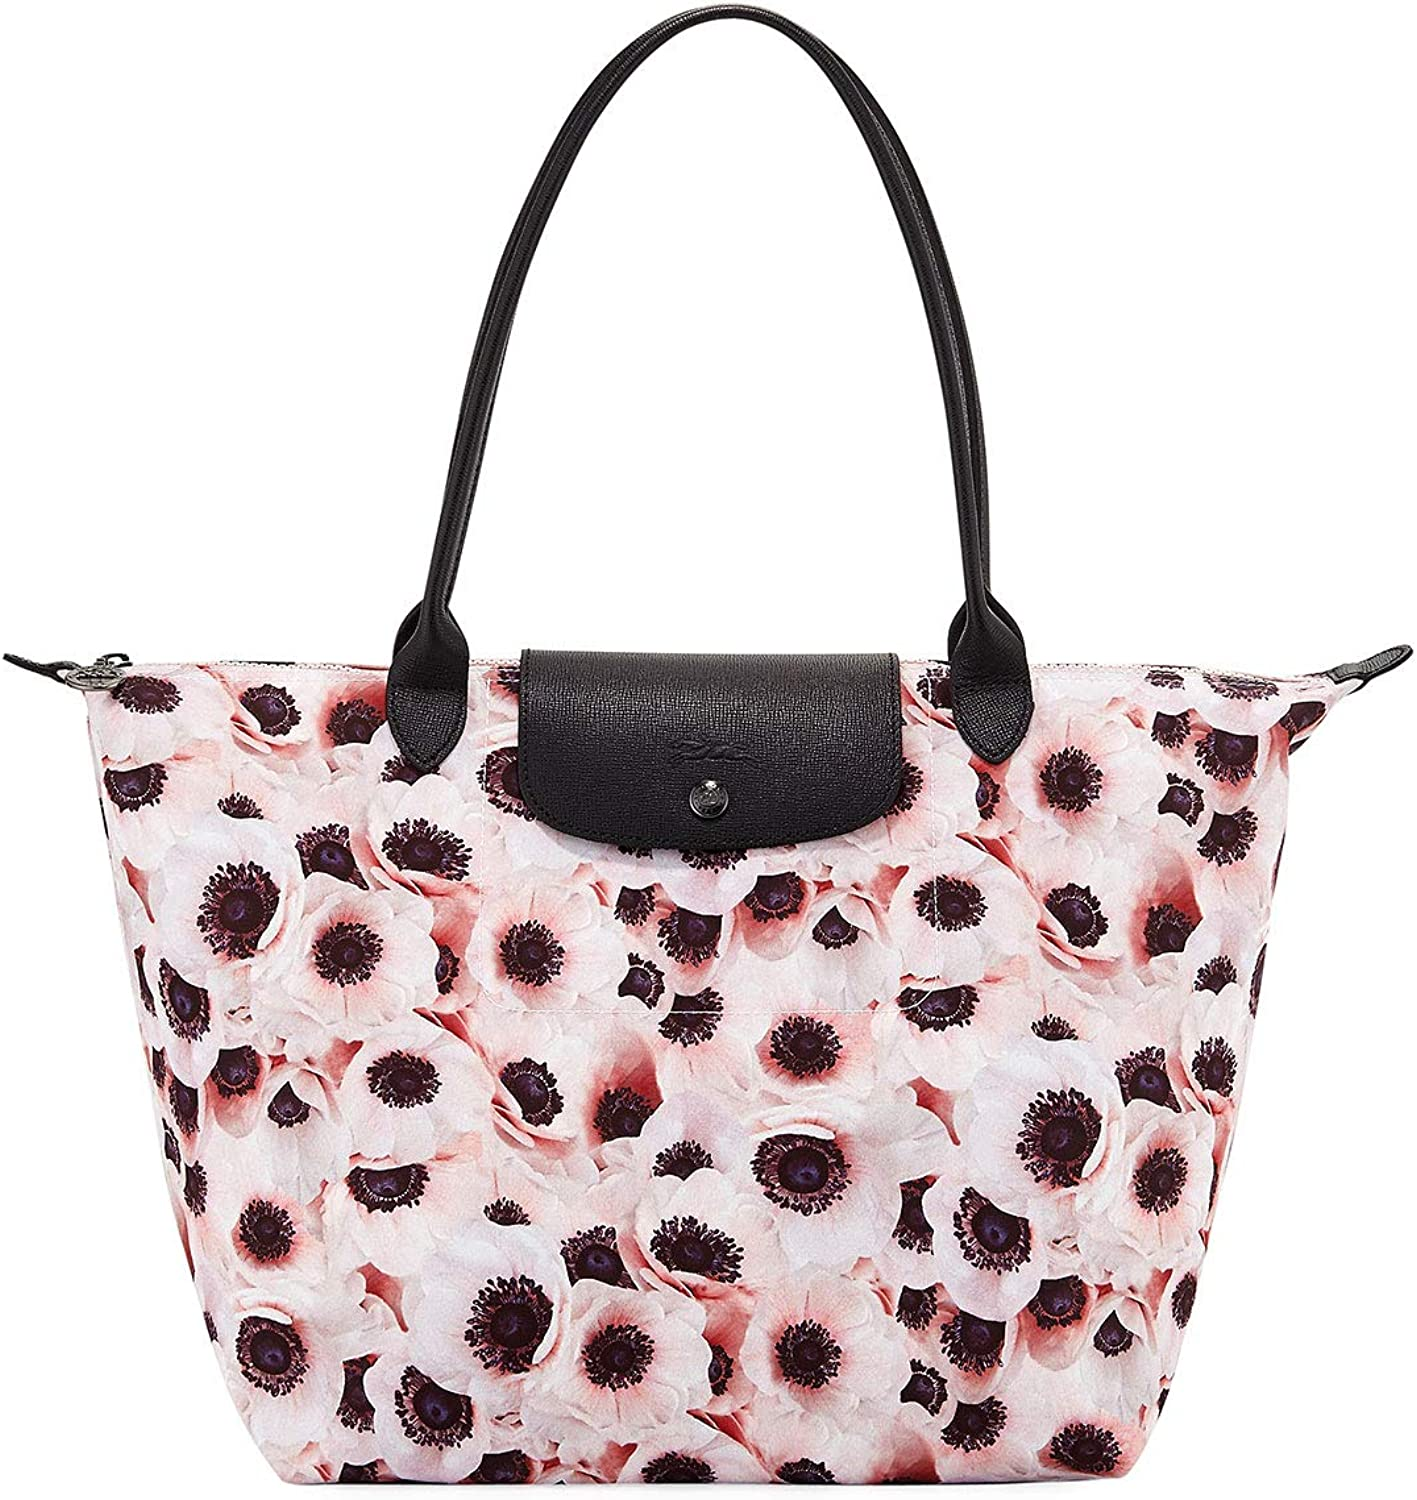 LONGCHAMP Le Max 87% OFF Pliage Medium Shoulder Bag Tote Cheap mail order specialty store Anemone